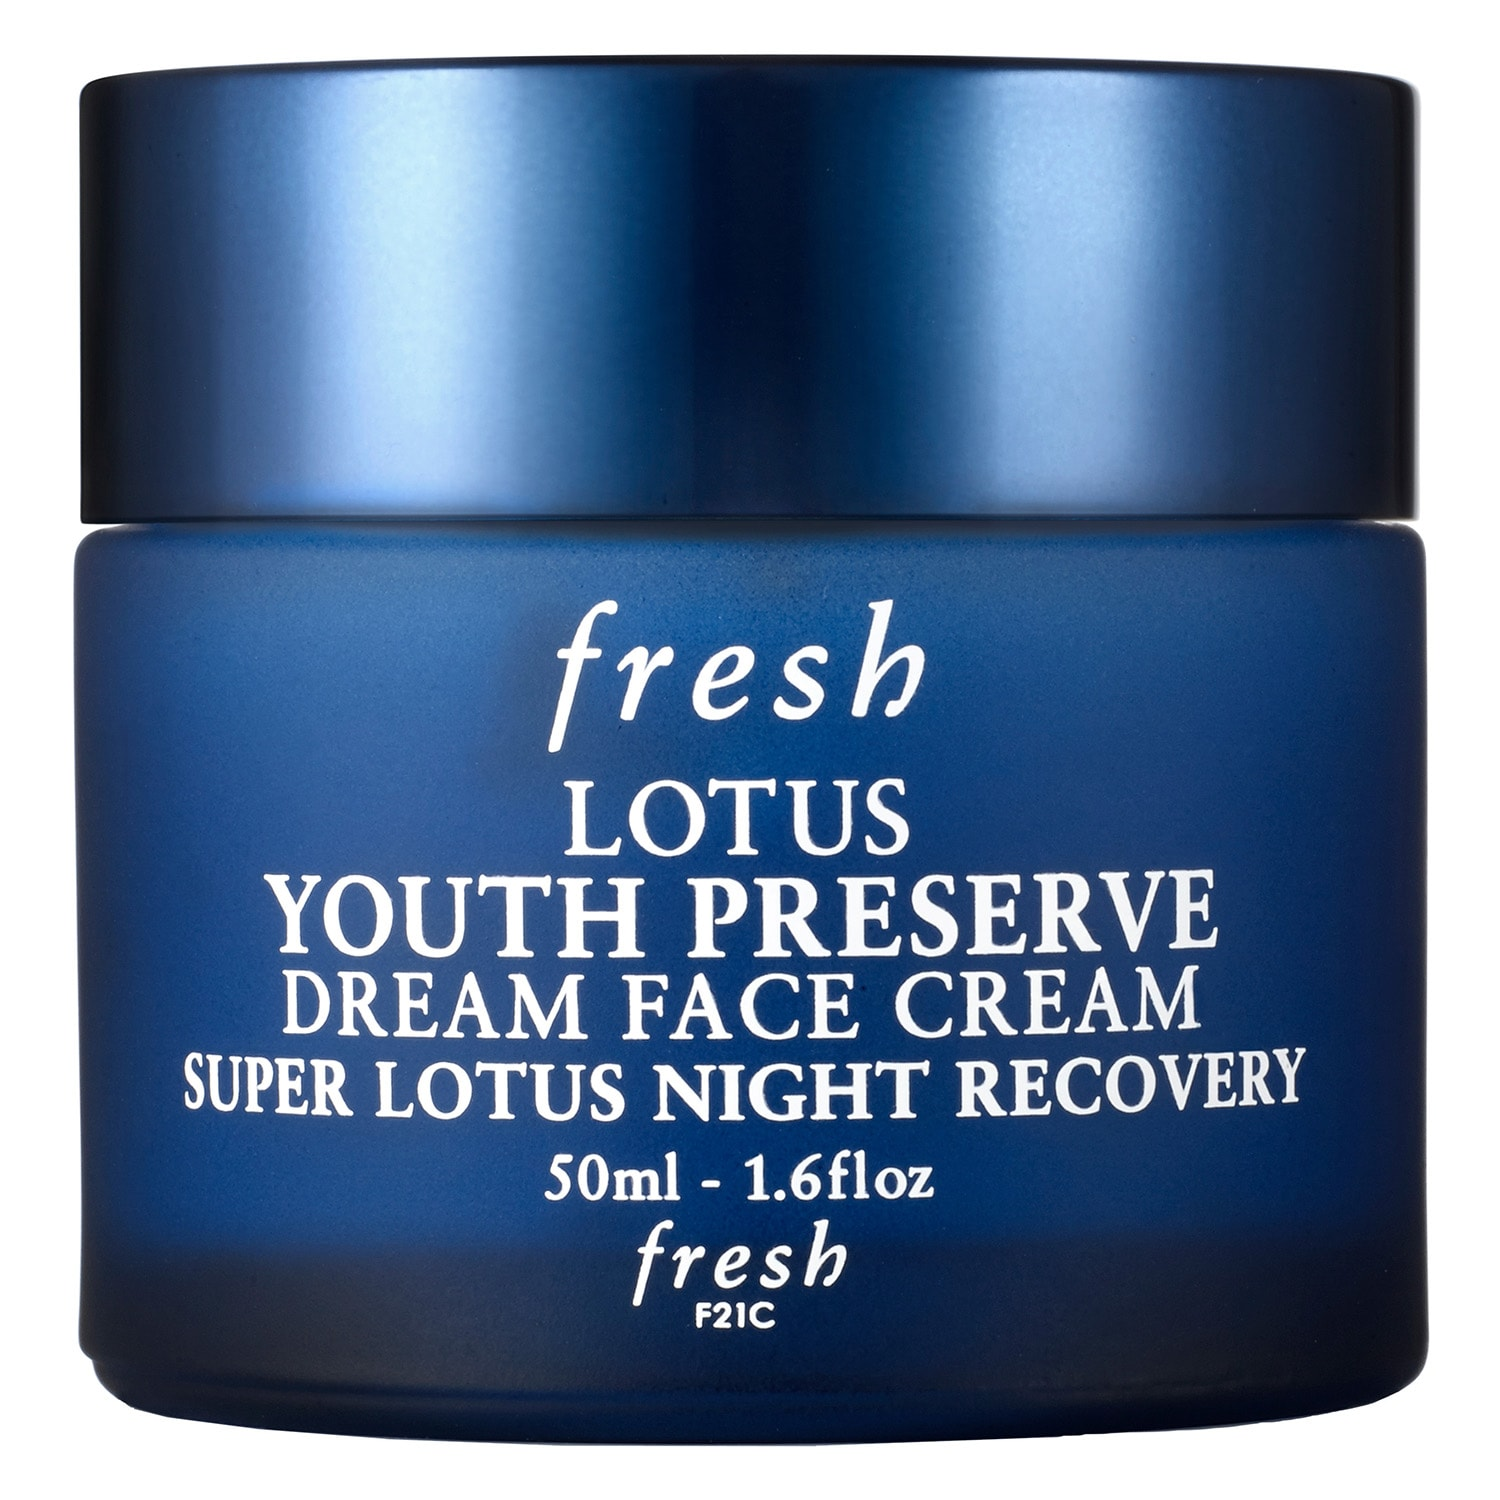 Lotus Youth Preserve Dream Cream - Crème de nuit au lotus